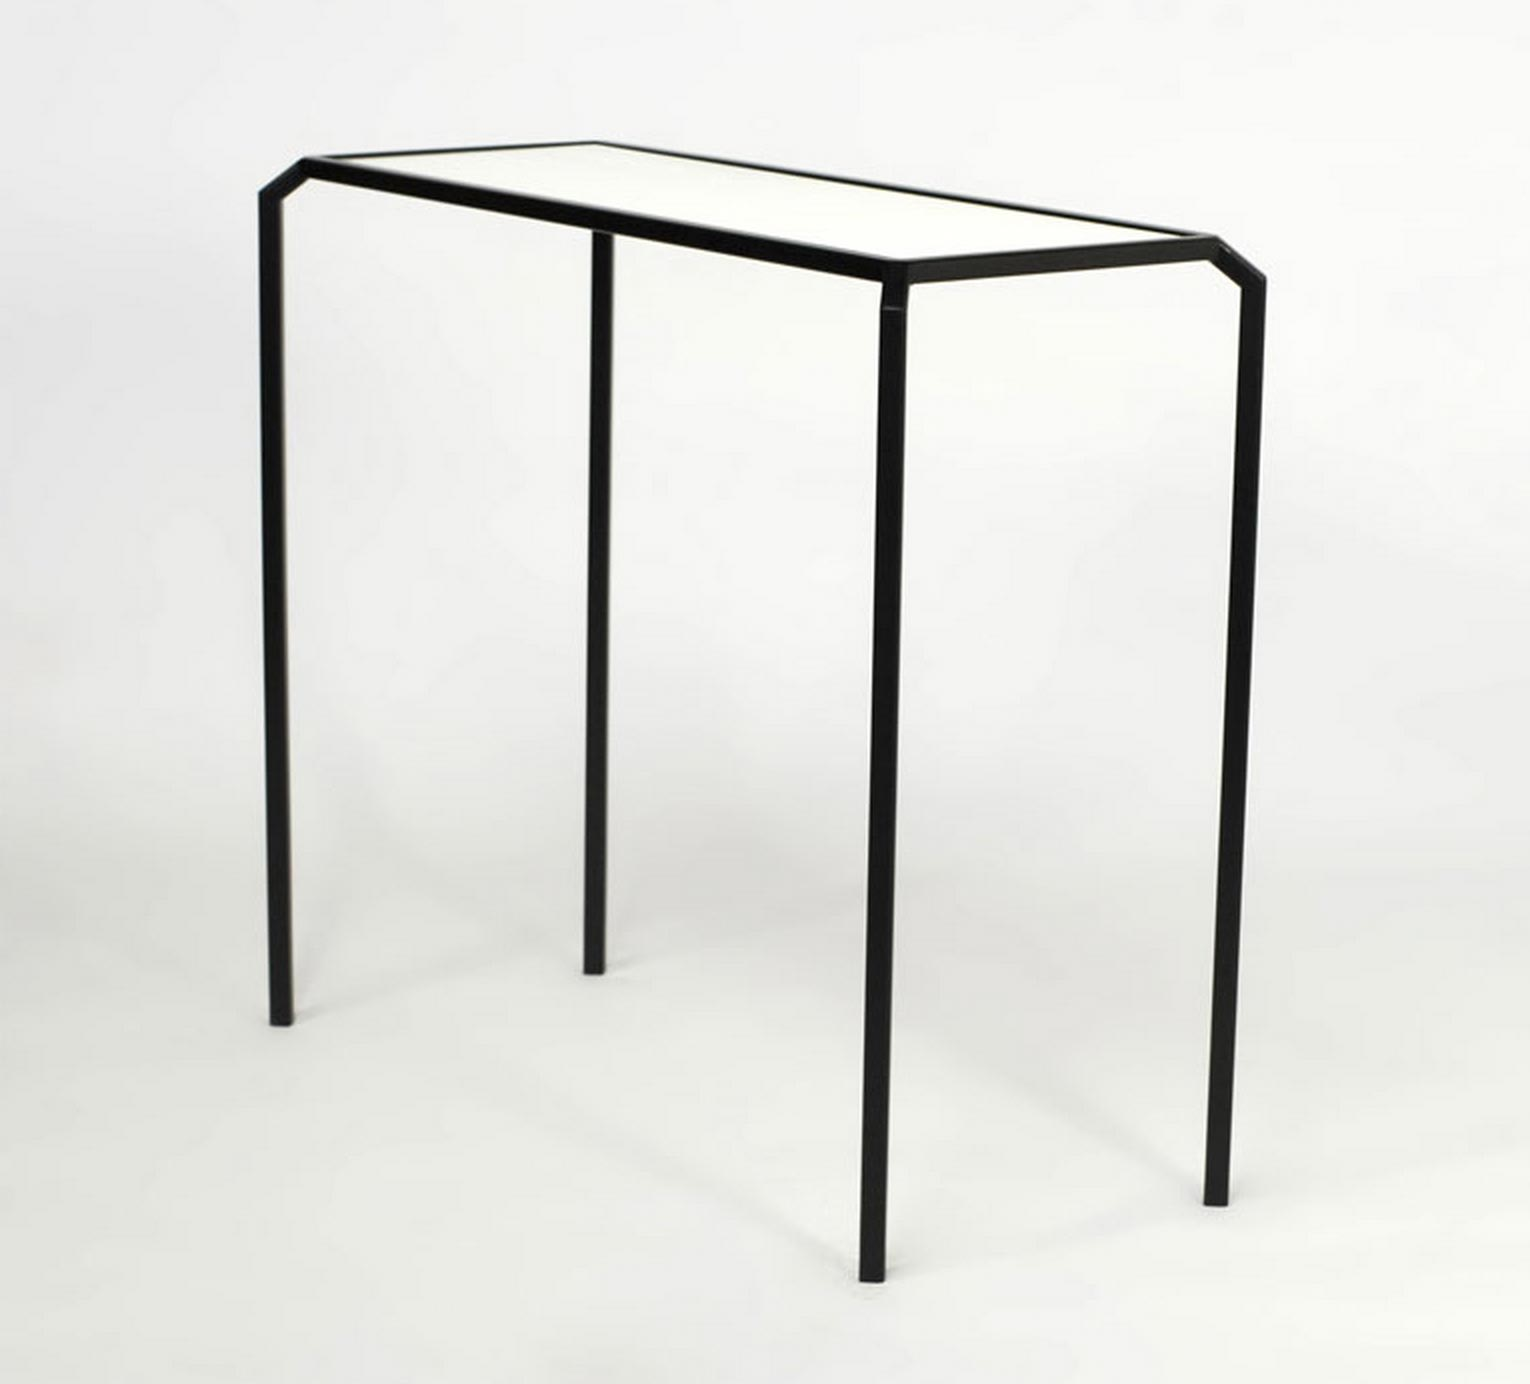 FINE console table from FKATURA